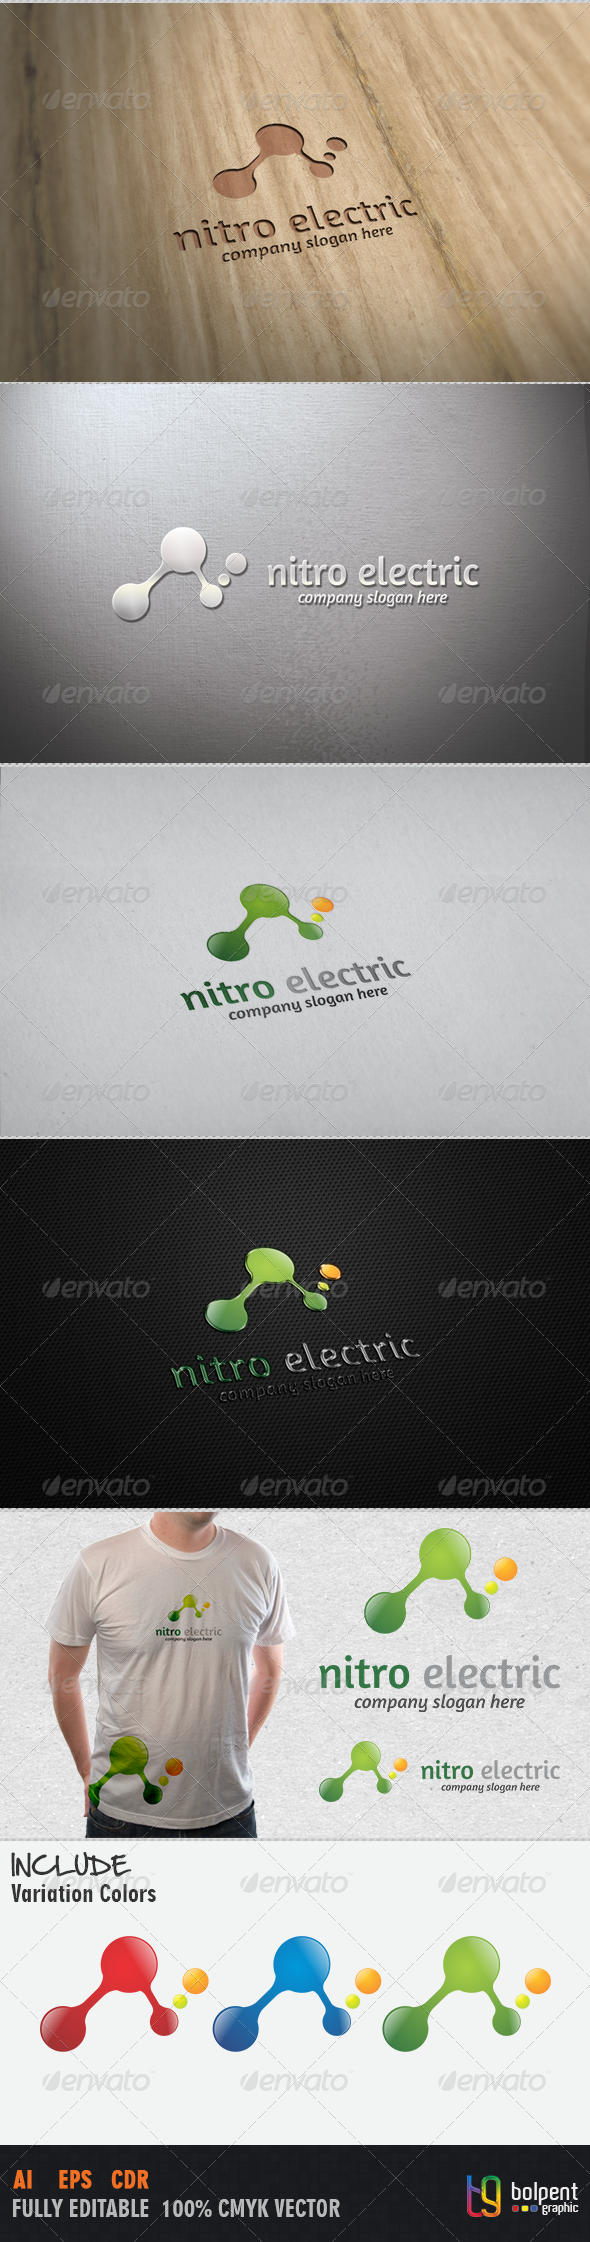 Nitro Electric Logo Template By Bolpent Templateoverview Cmyk Color 100 Vector Editable Re Sizable File In These Formats Eps